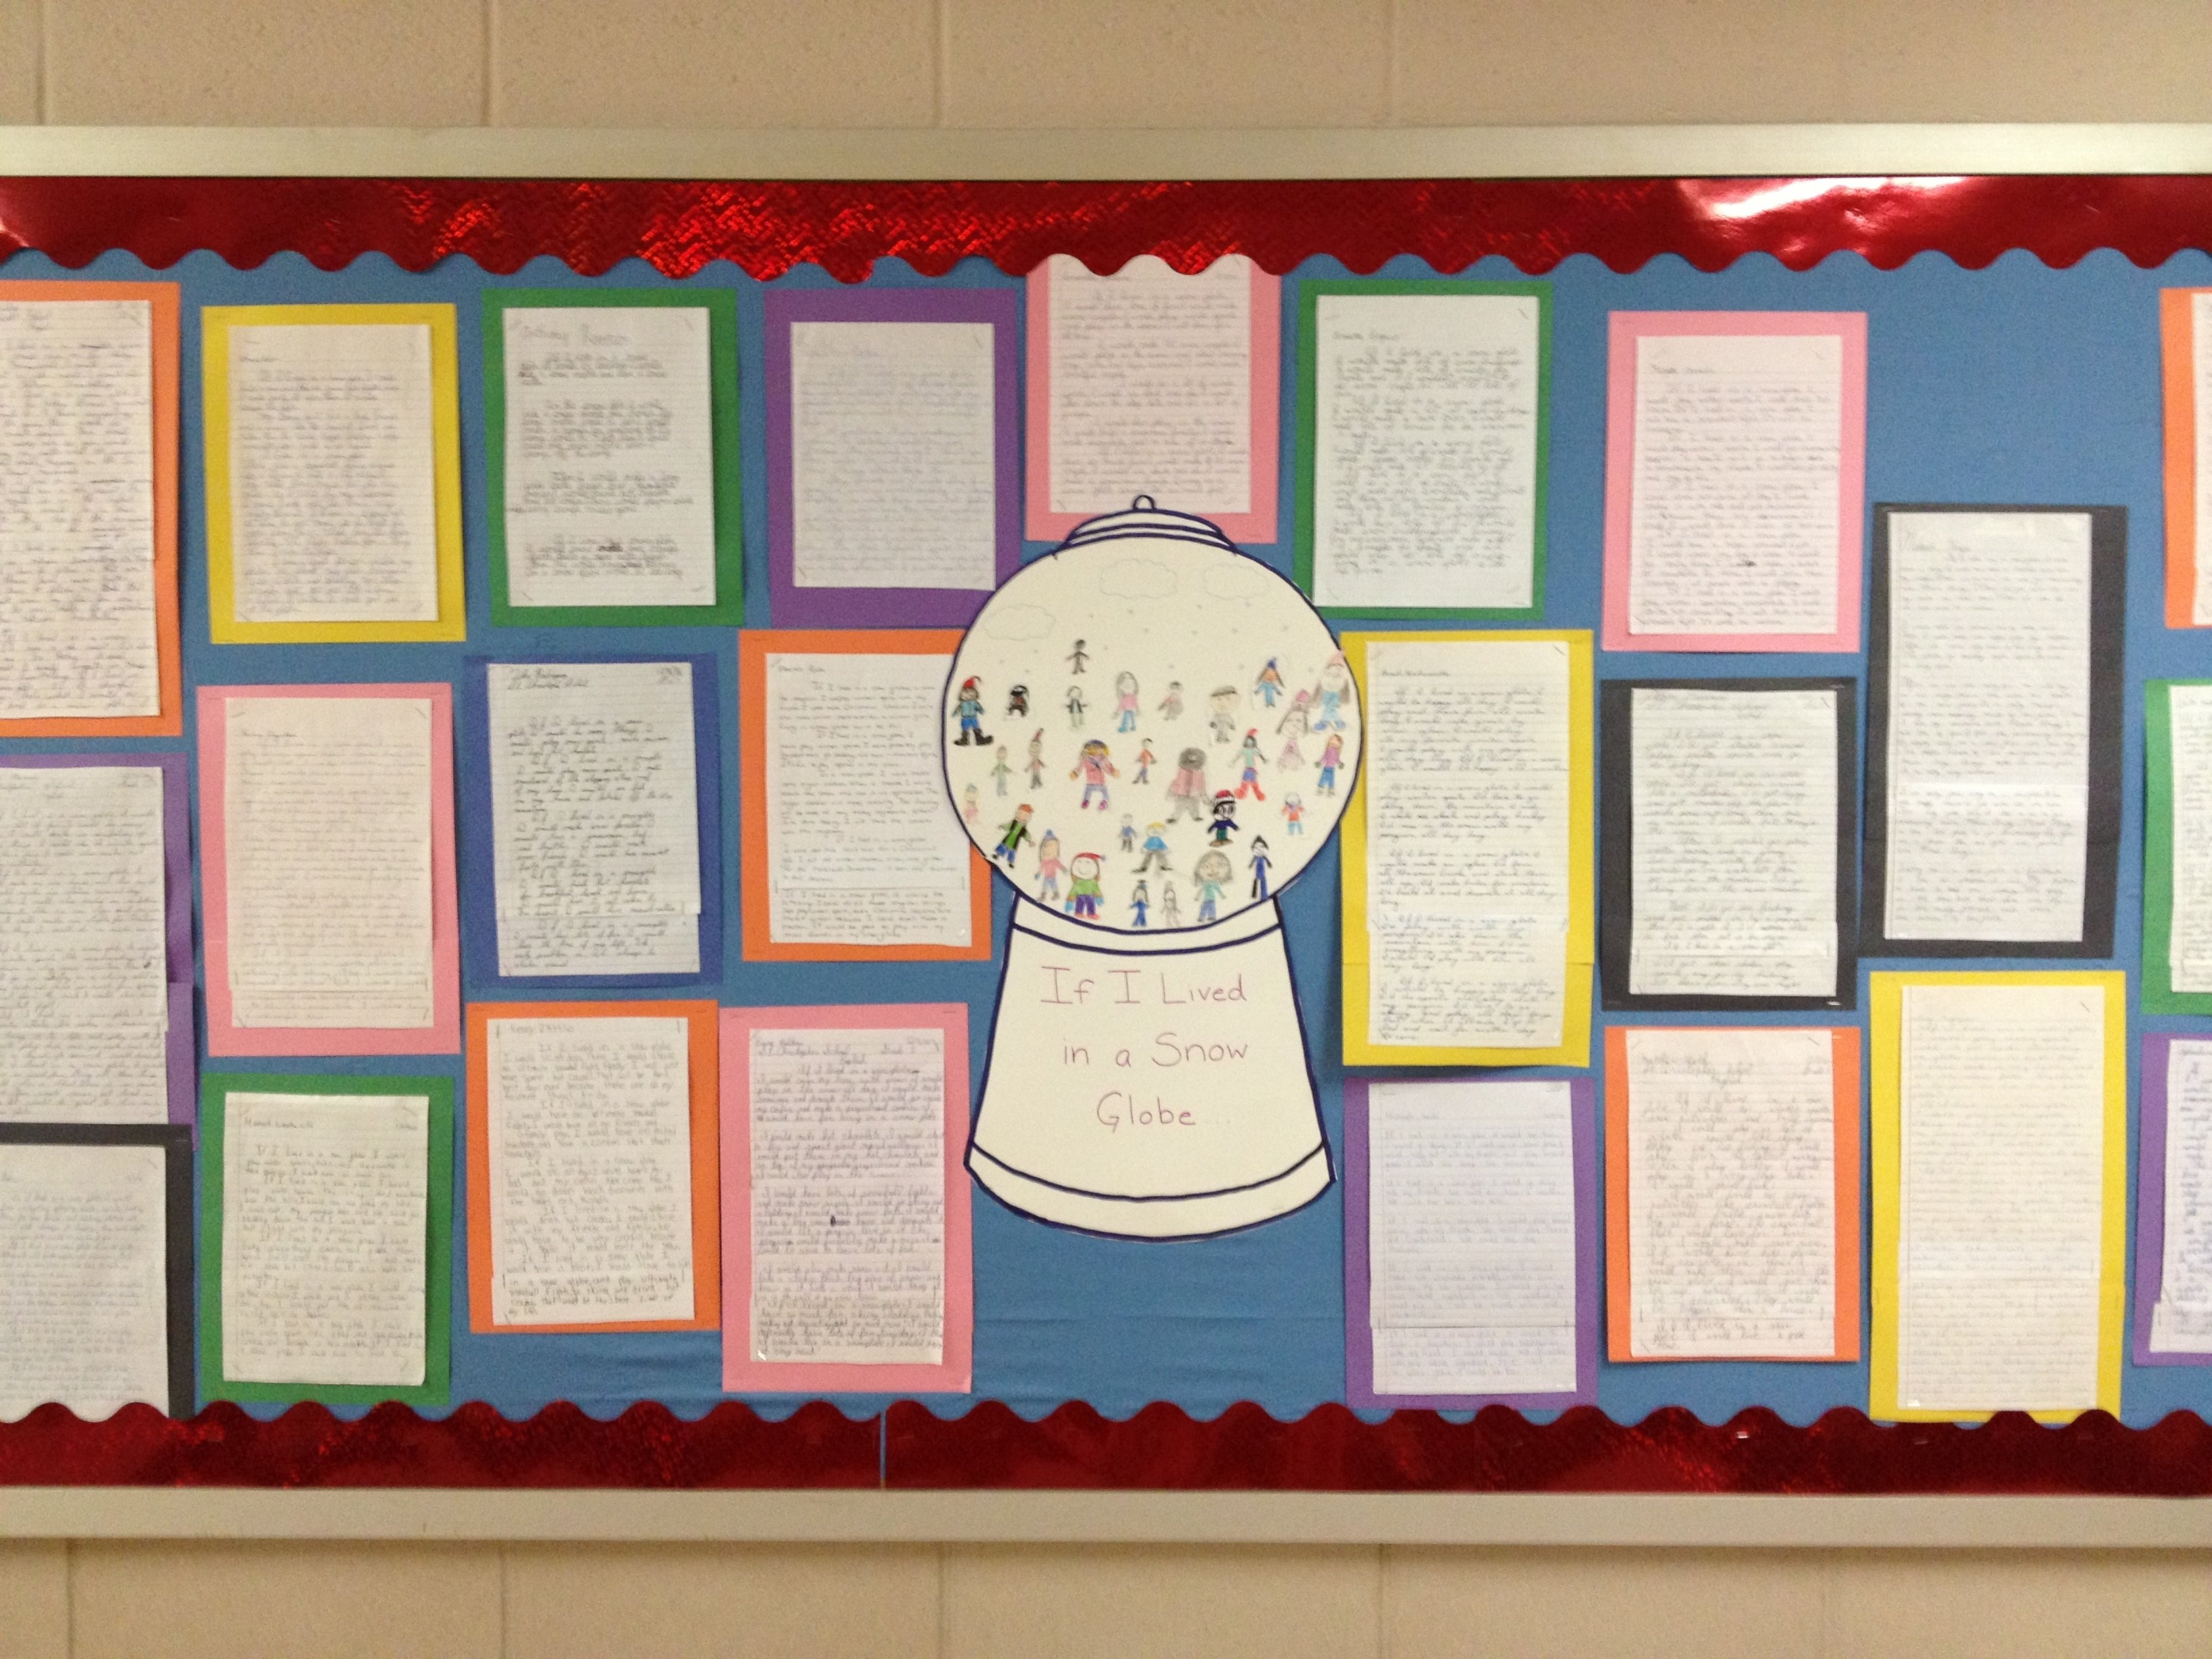 10 Amazing Fifth Grade Bulletin Board Ideas bulletin boards bunch ideas of fifth grade classroom bulletin board 2020